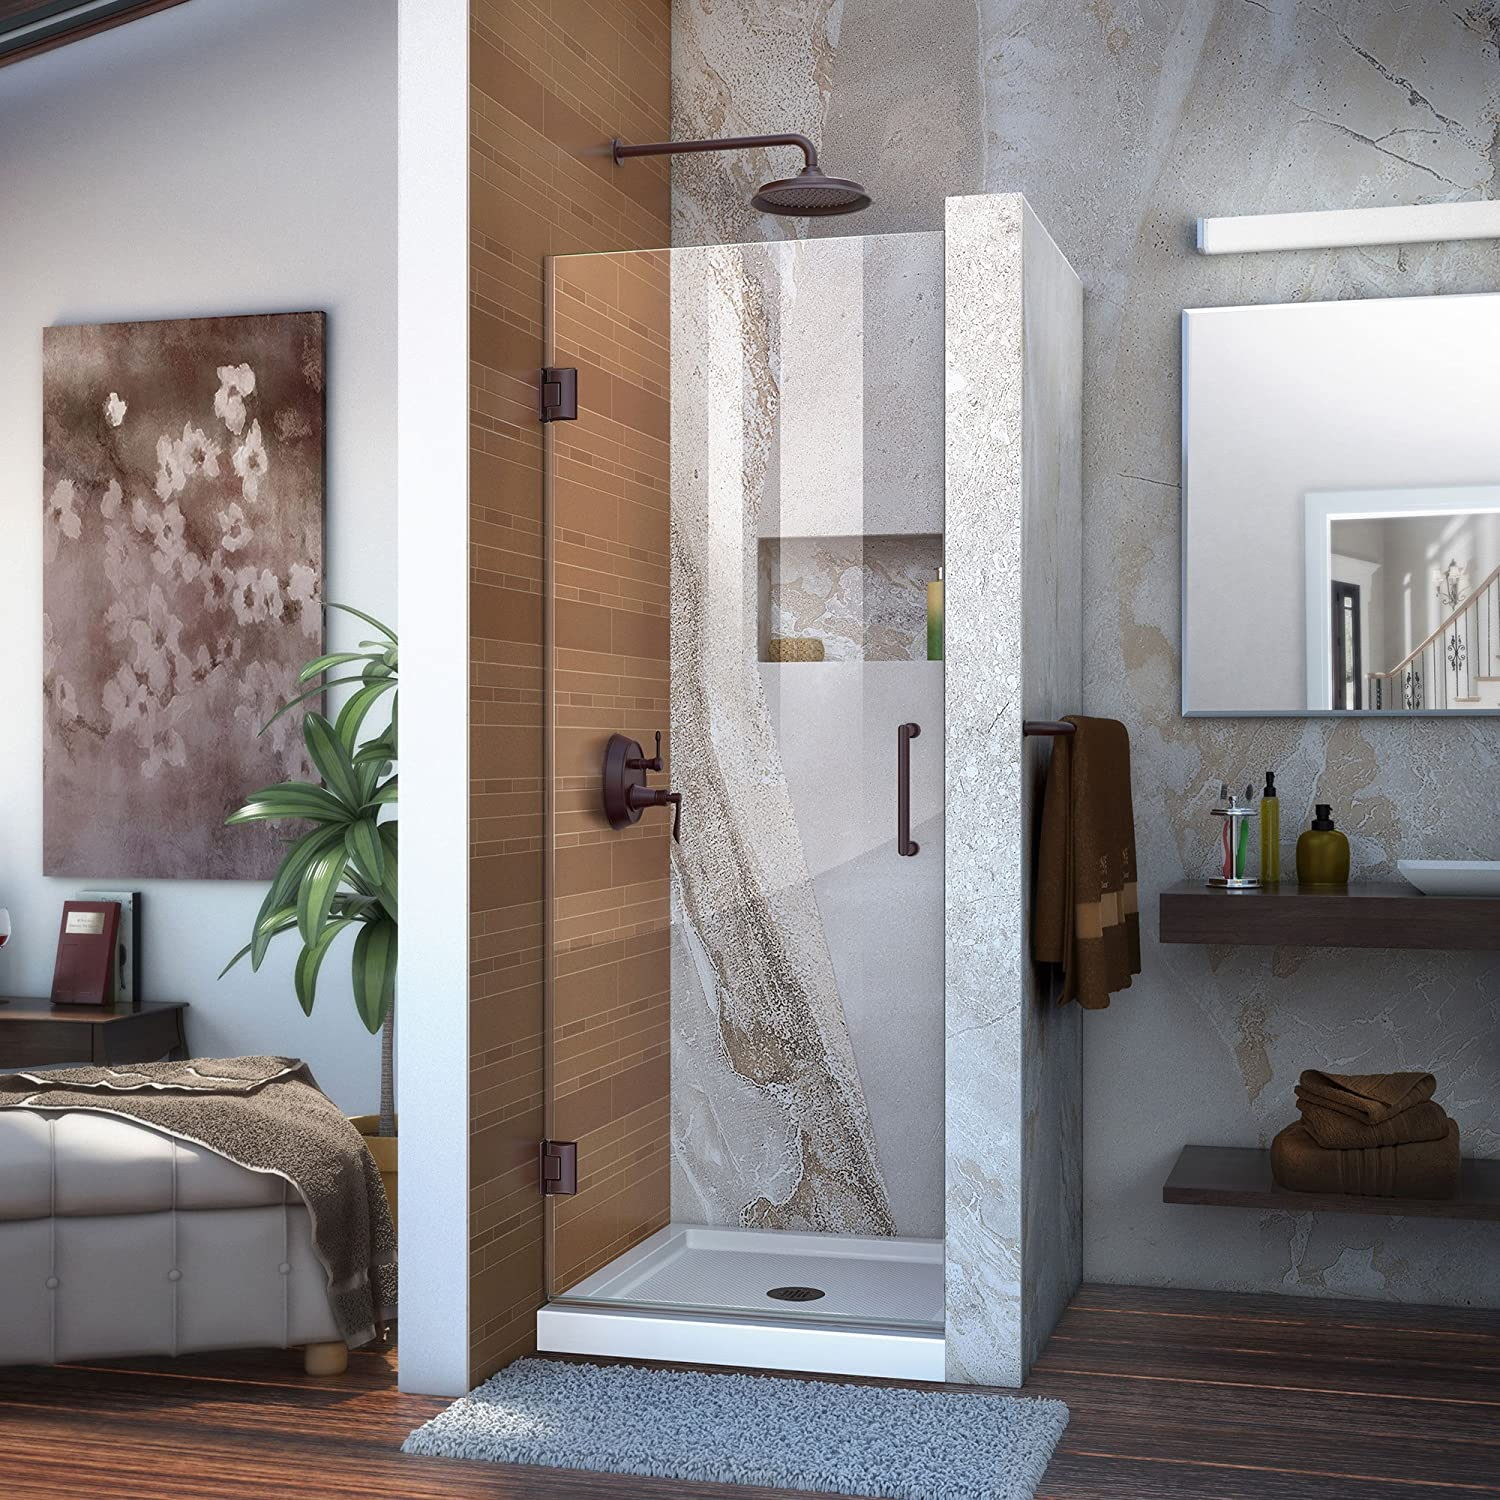 DreamLine Unidoor 25 in. W x 72 in. H Frameless Hinged Shower Door, Clear Glass, in Oil Rubbed Bronze, SHDR-20257210F-06